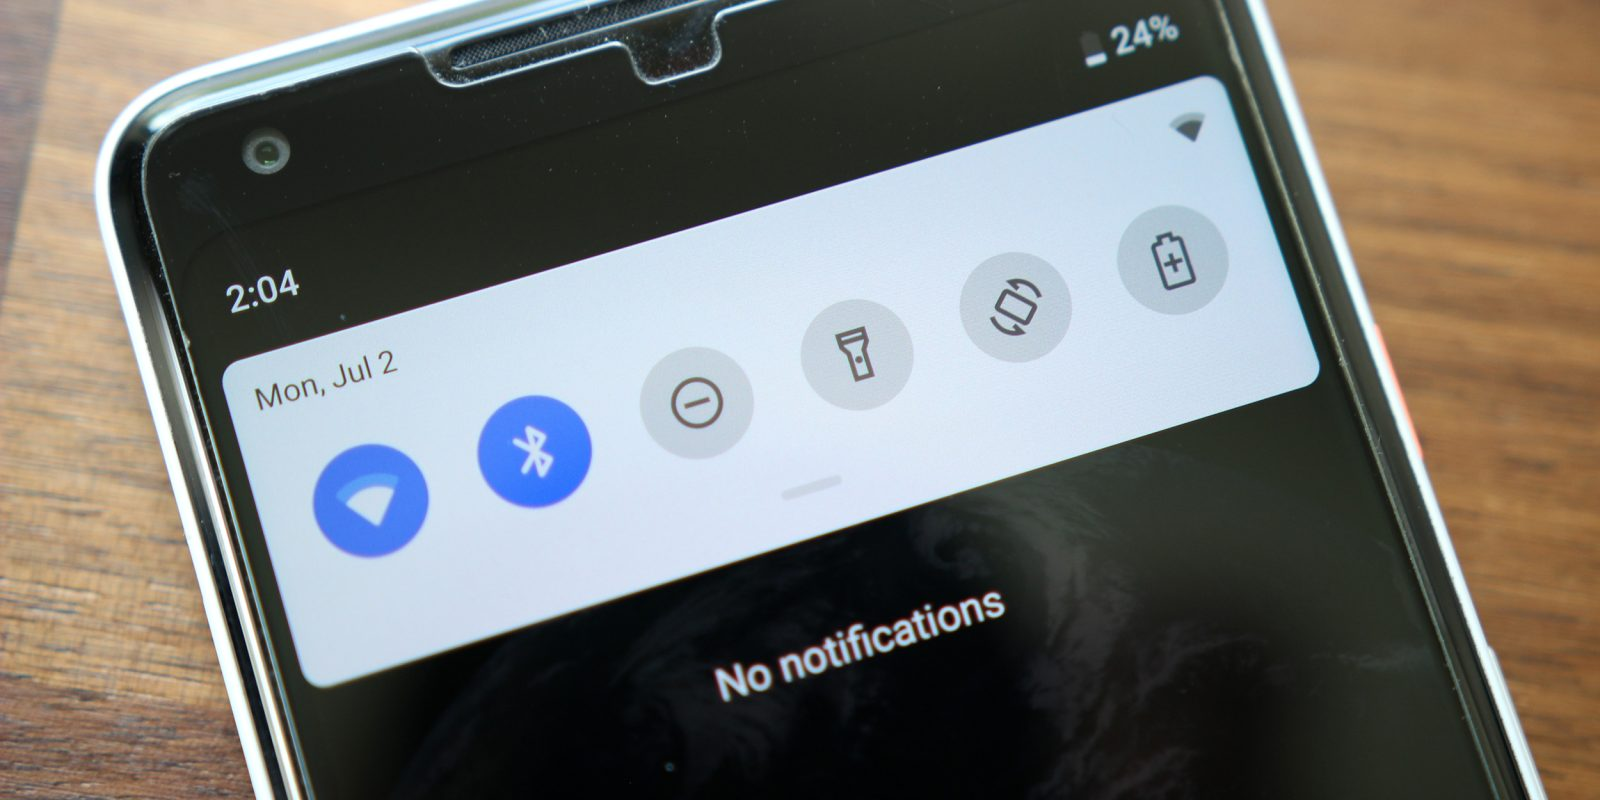 WPS is no longer available in Android P, Google may be ditching